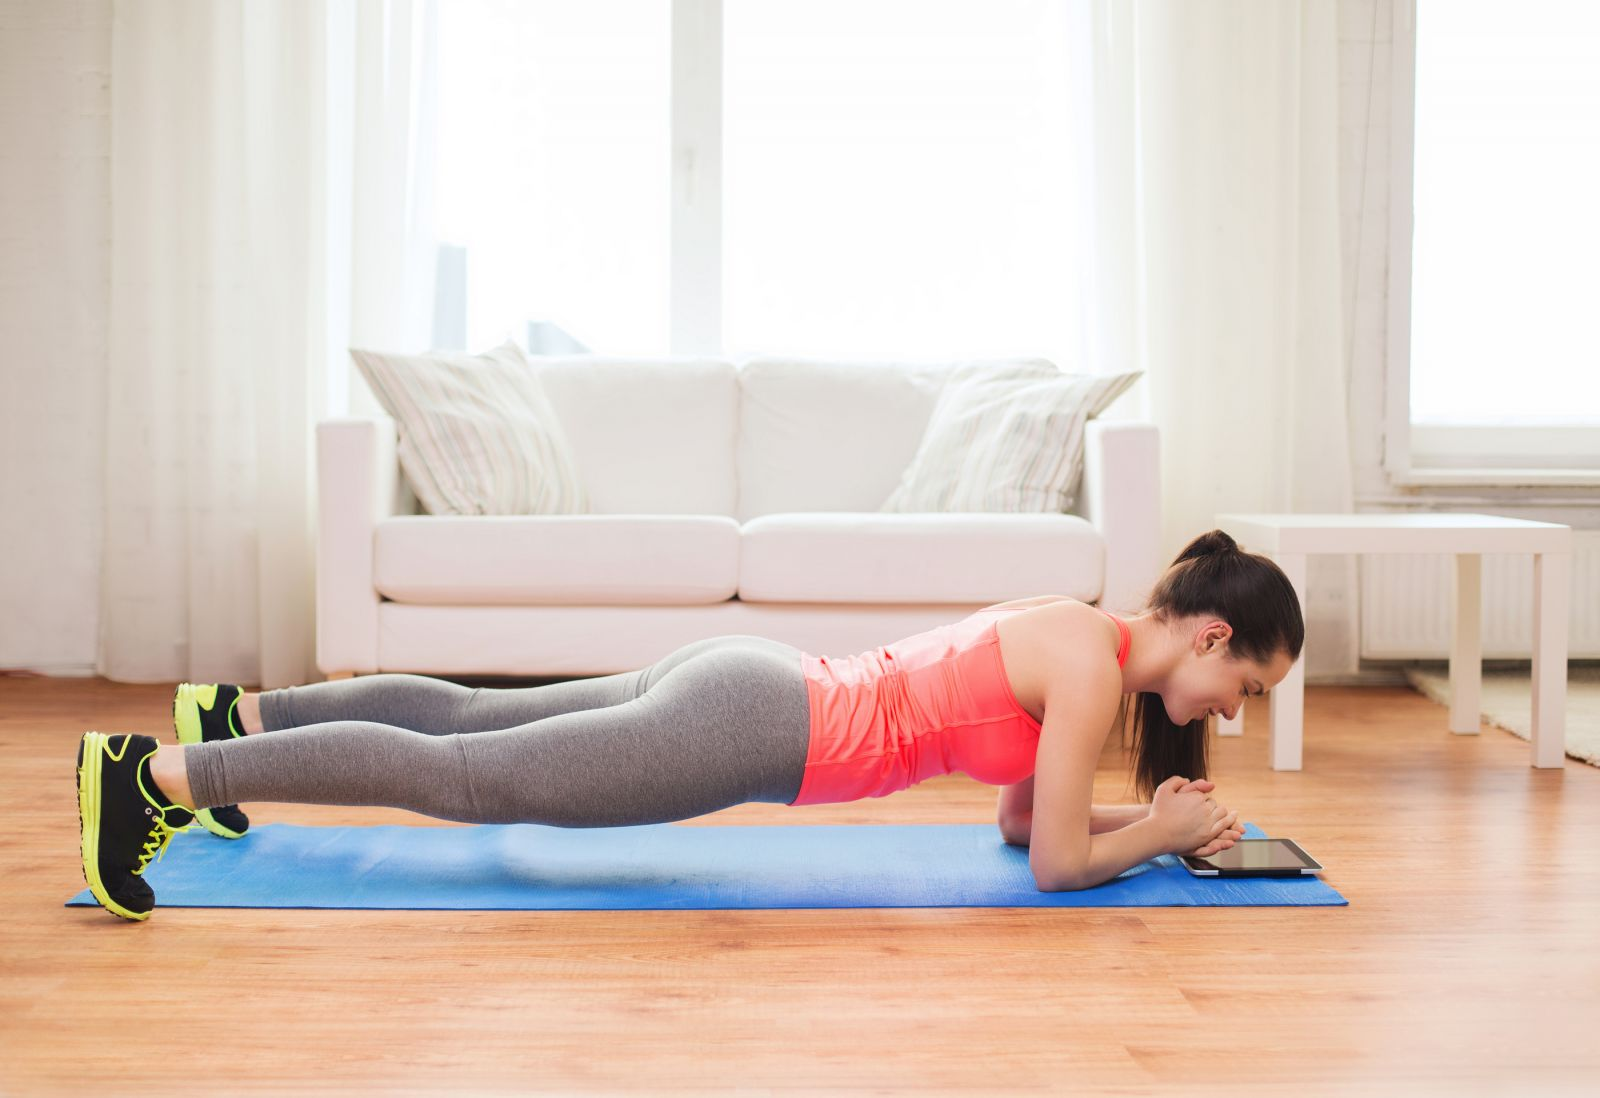 Want a stronger core? Skip the sit-ups